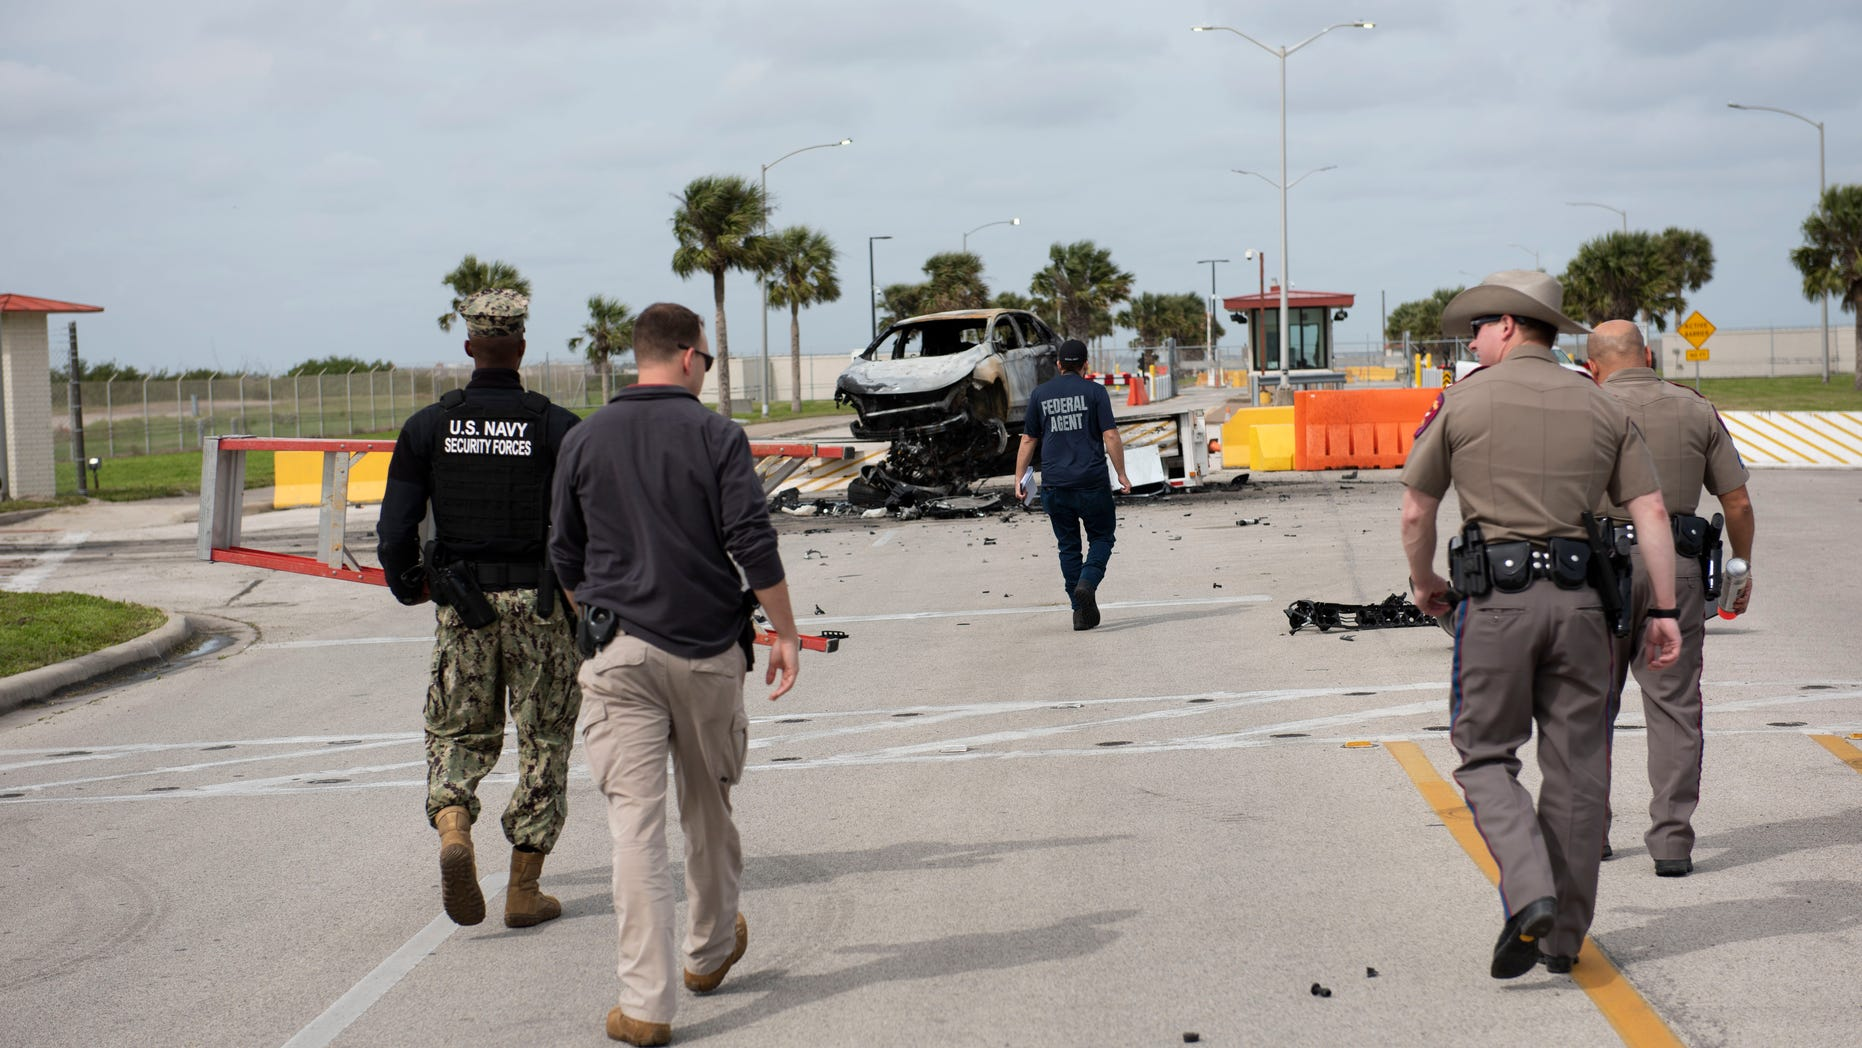 A man who crashed his car through the gate of a Texas naval base early Thursday and tried to attack security personnel was shot and killed.